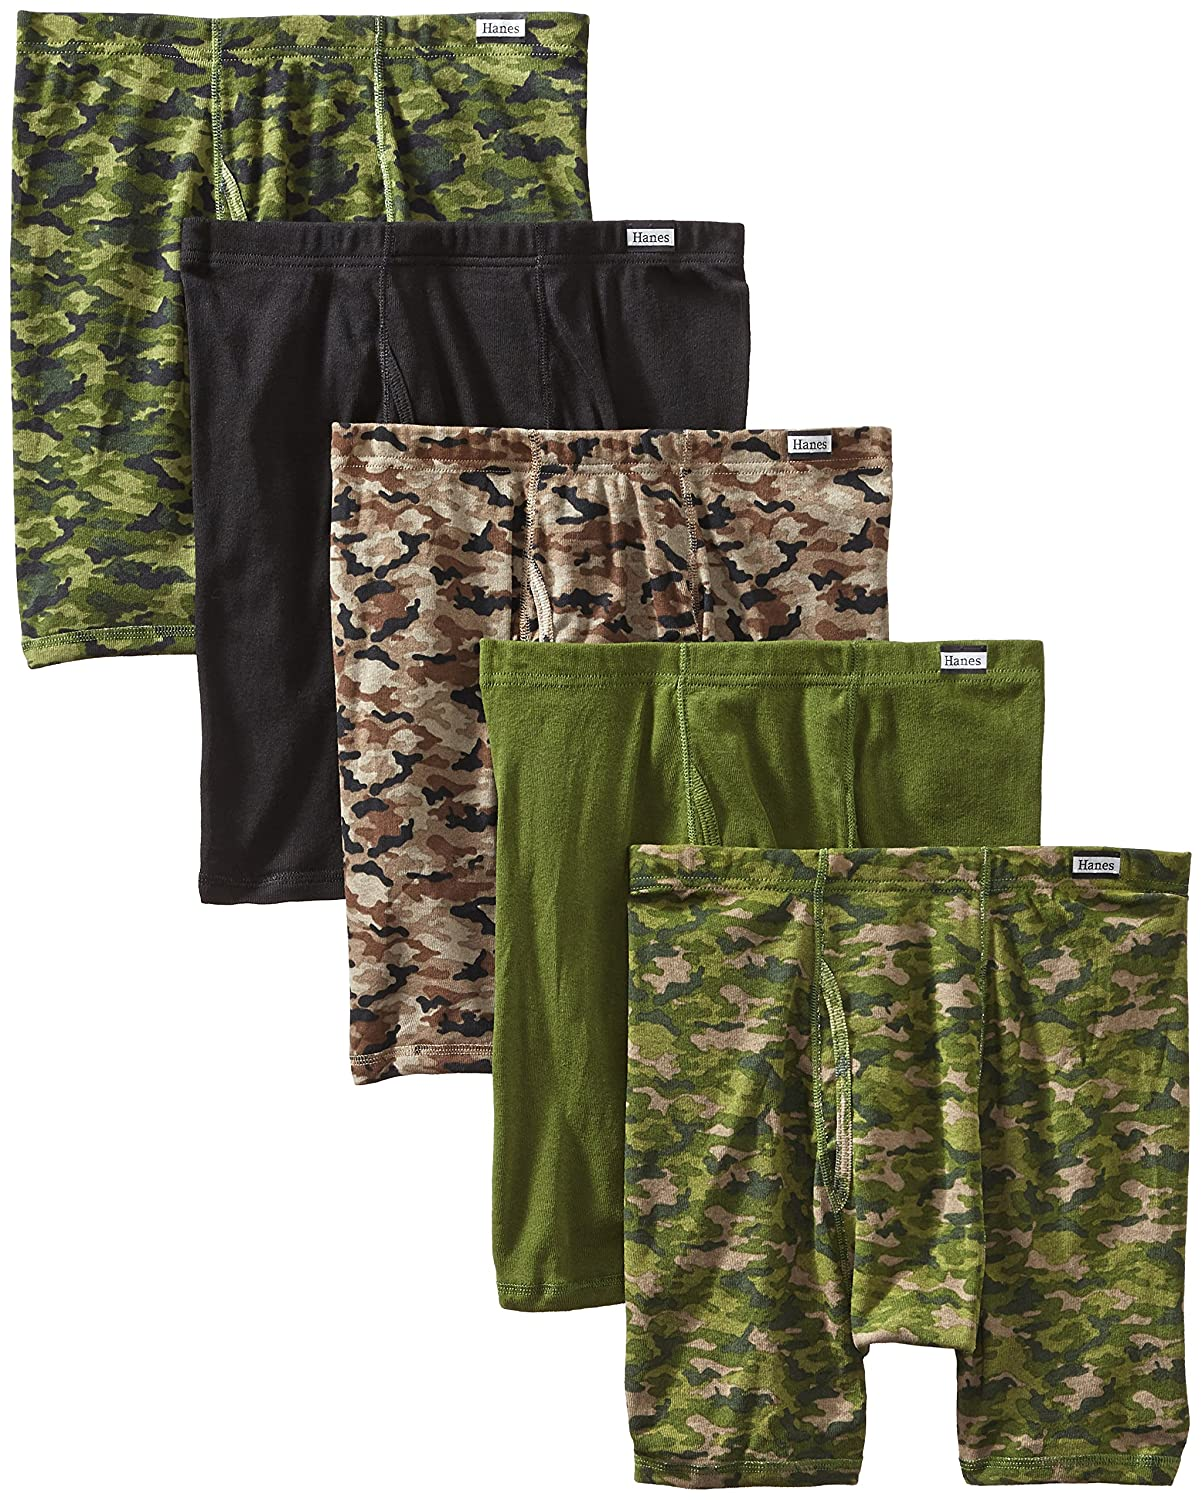 Hanes Men\'s 5-Pack Comfort Soft Printed Boxer Briefs at Amazon Men's Clothing store